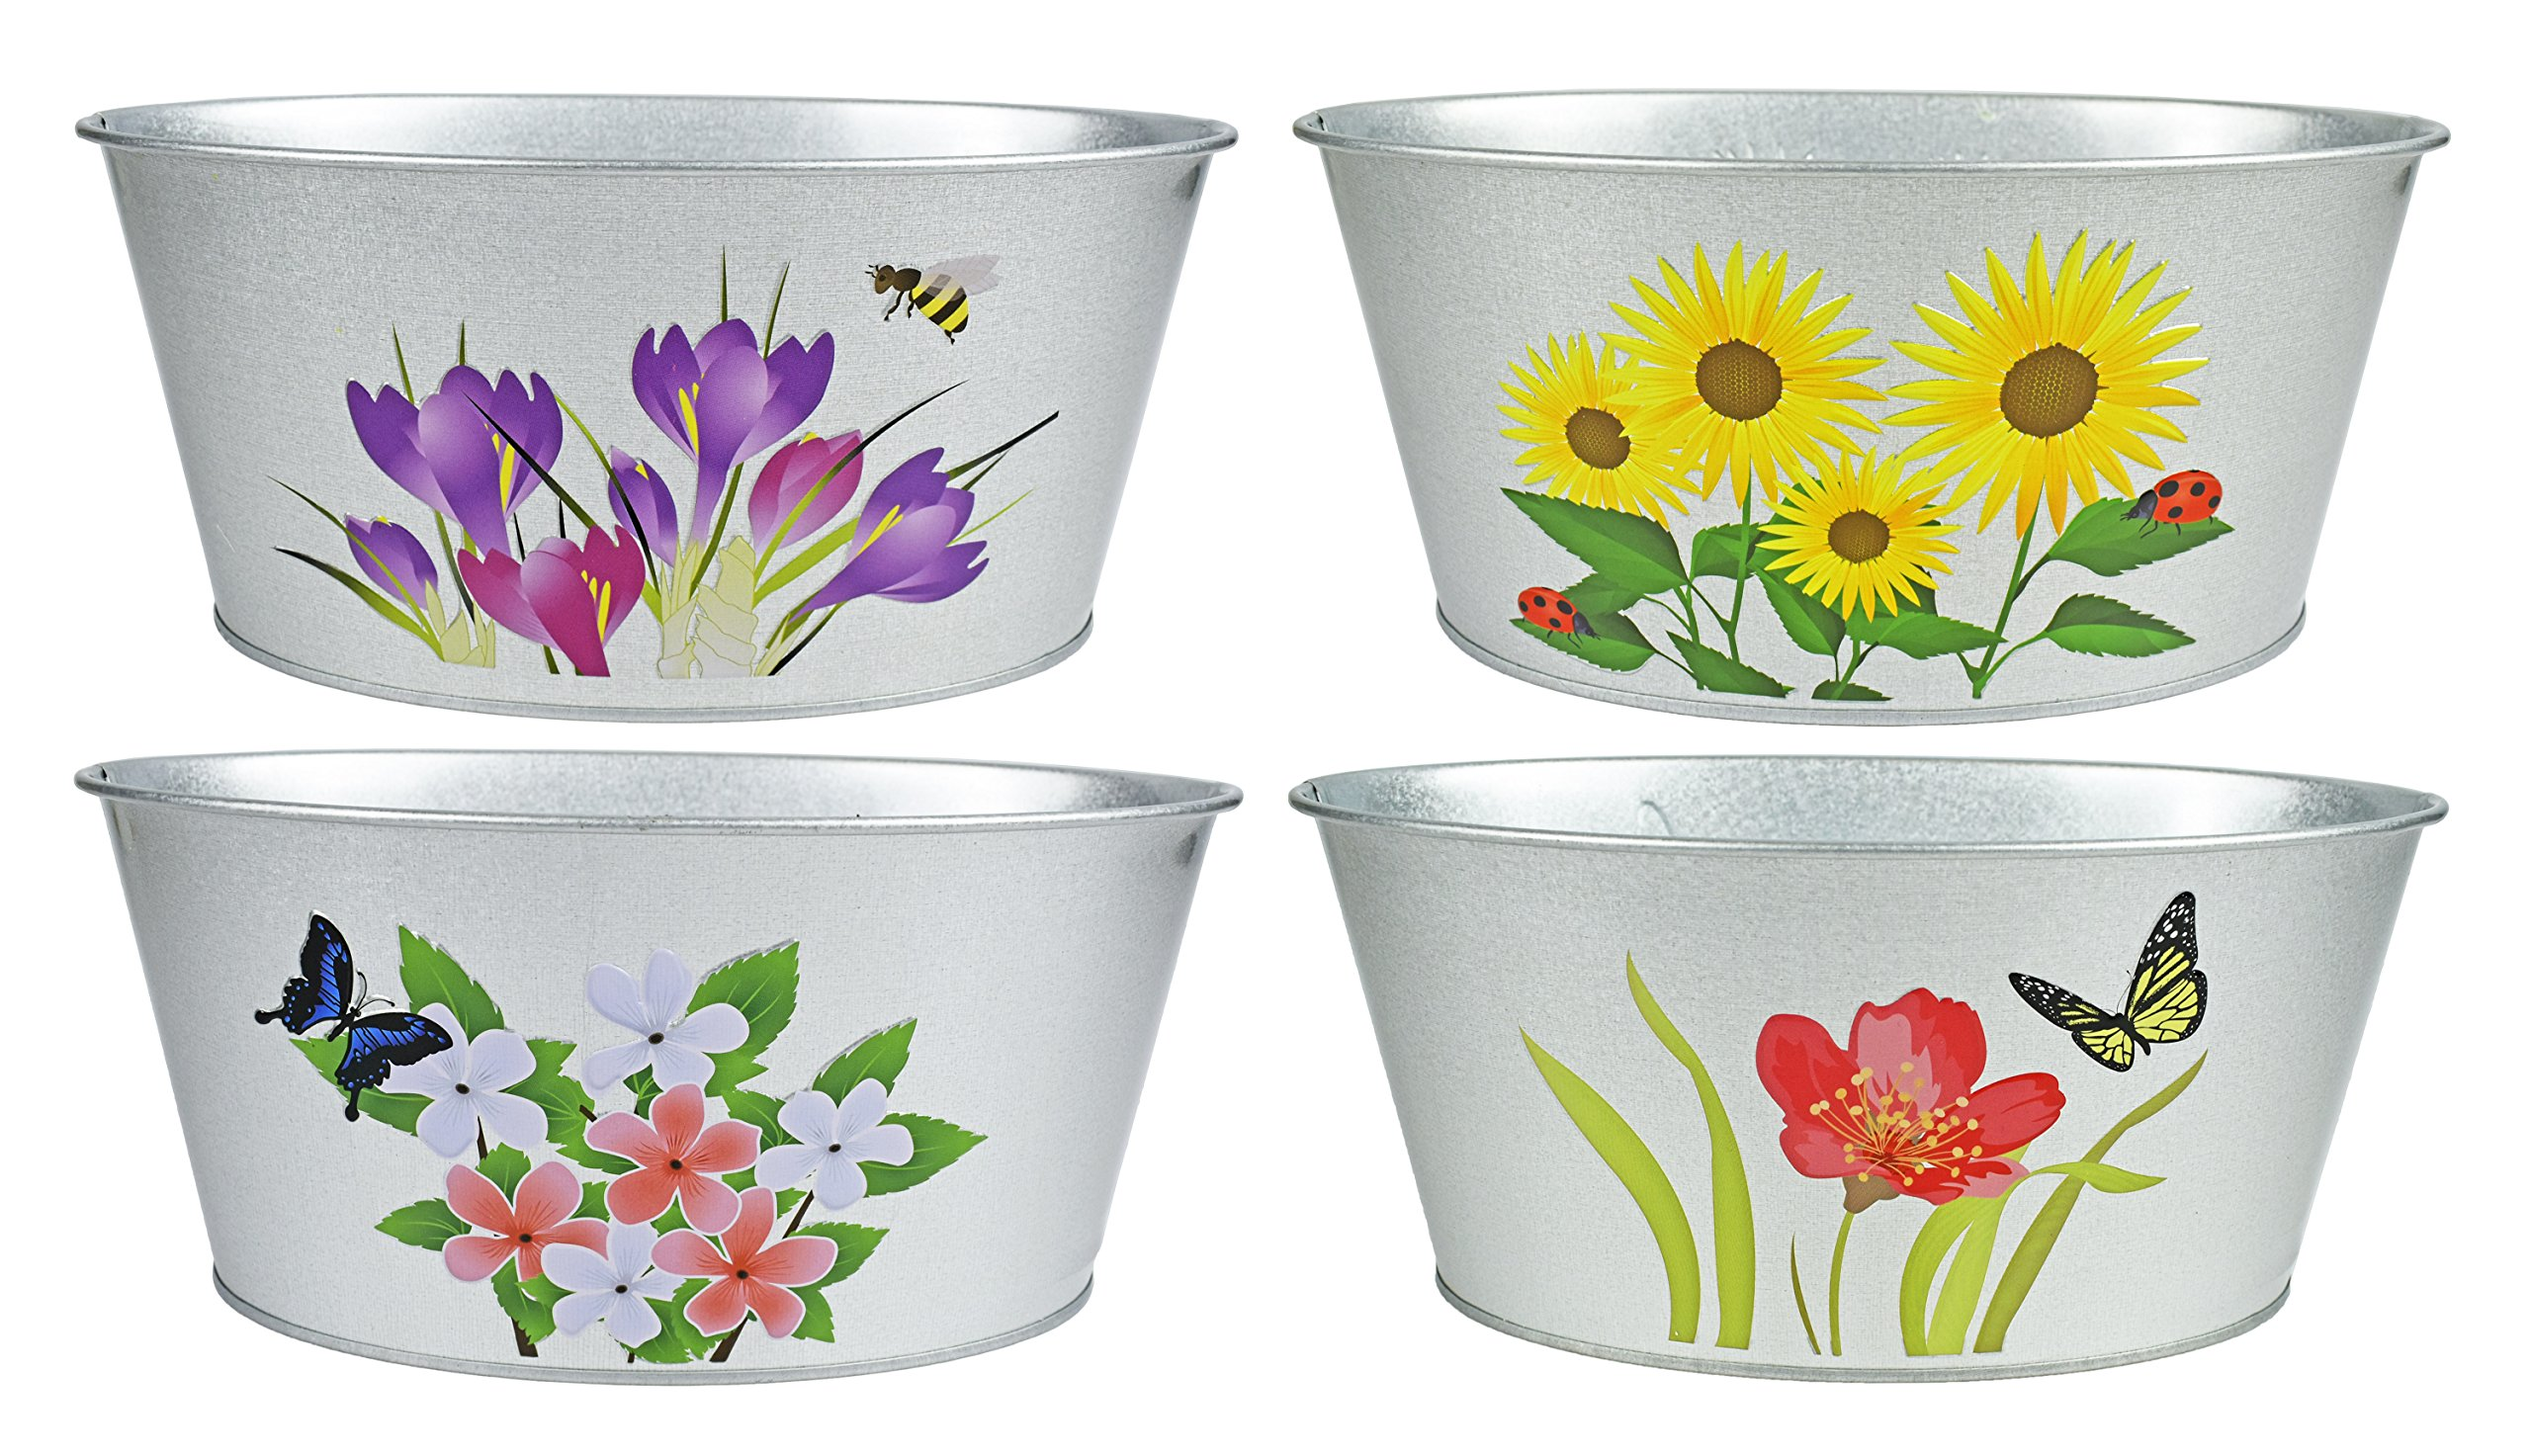 Set of 4 Tin Planters! Perfect for Decorative Gardening, Organizing, Decorative Storage, Gift Baskets, and More!